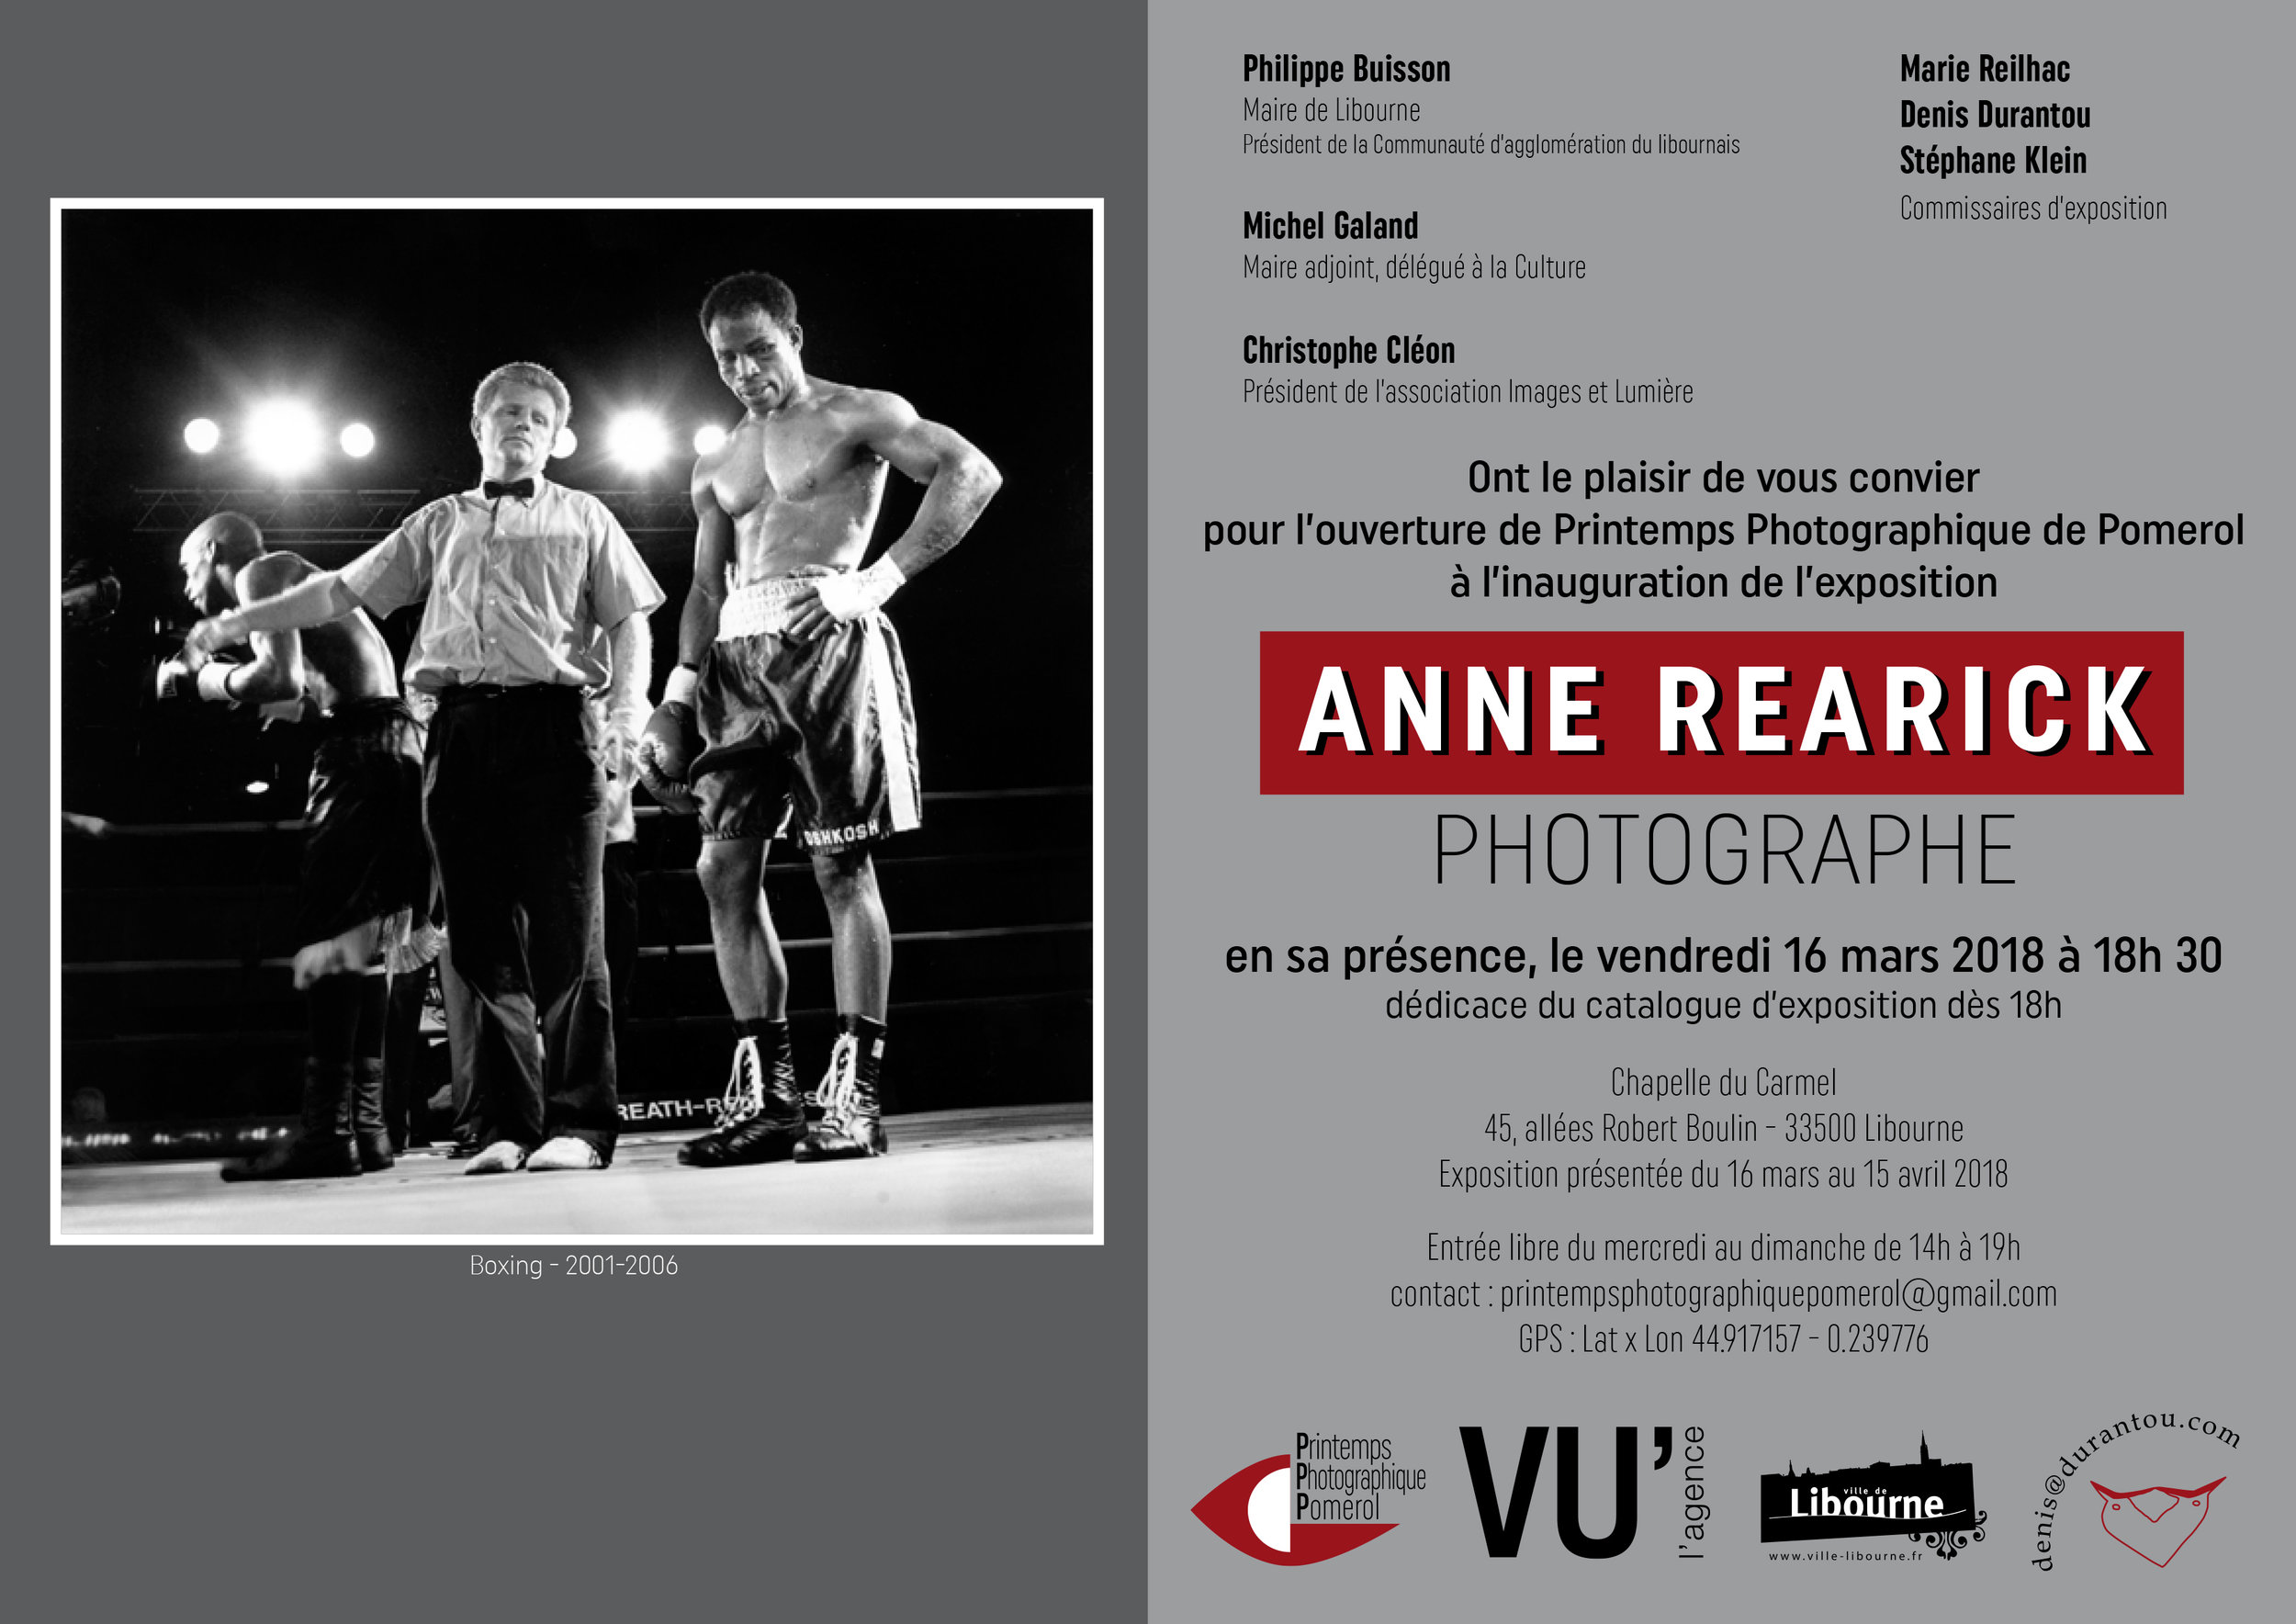 Invitation for Exhibition at the Chapelle du Carmel